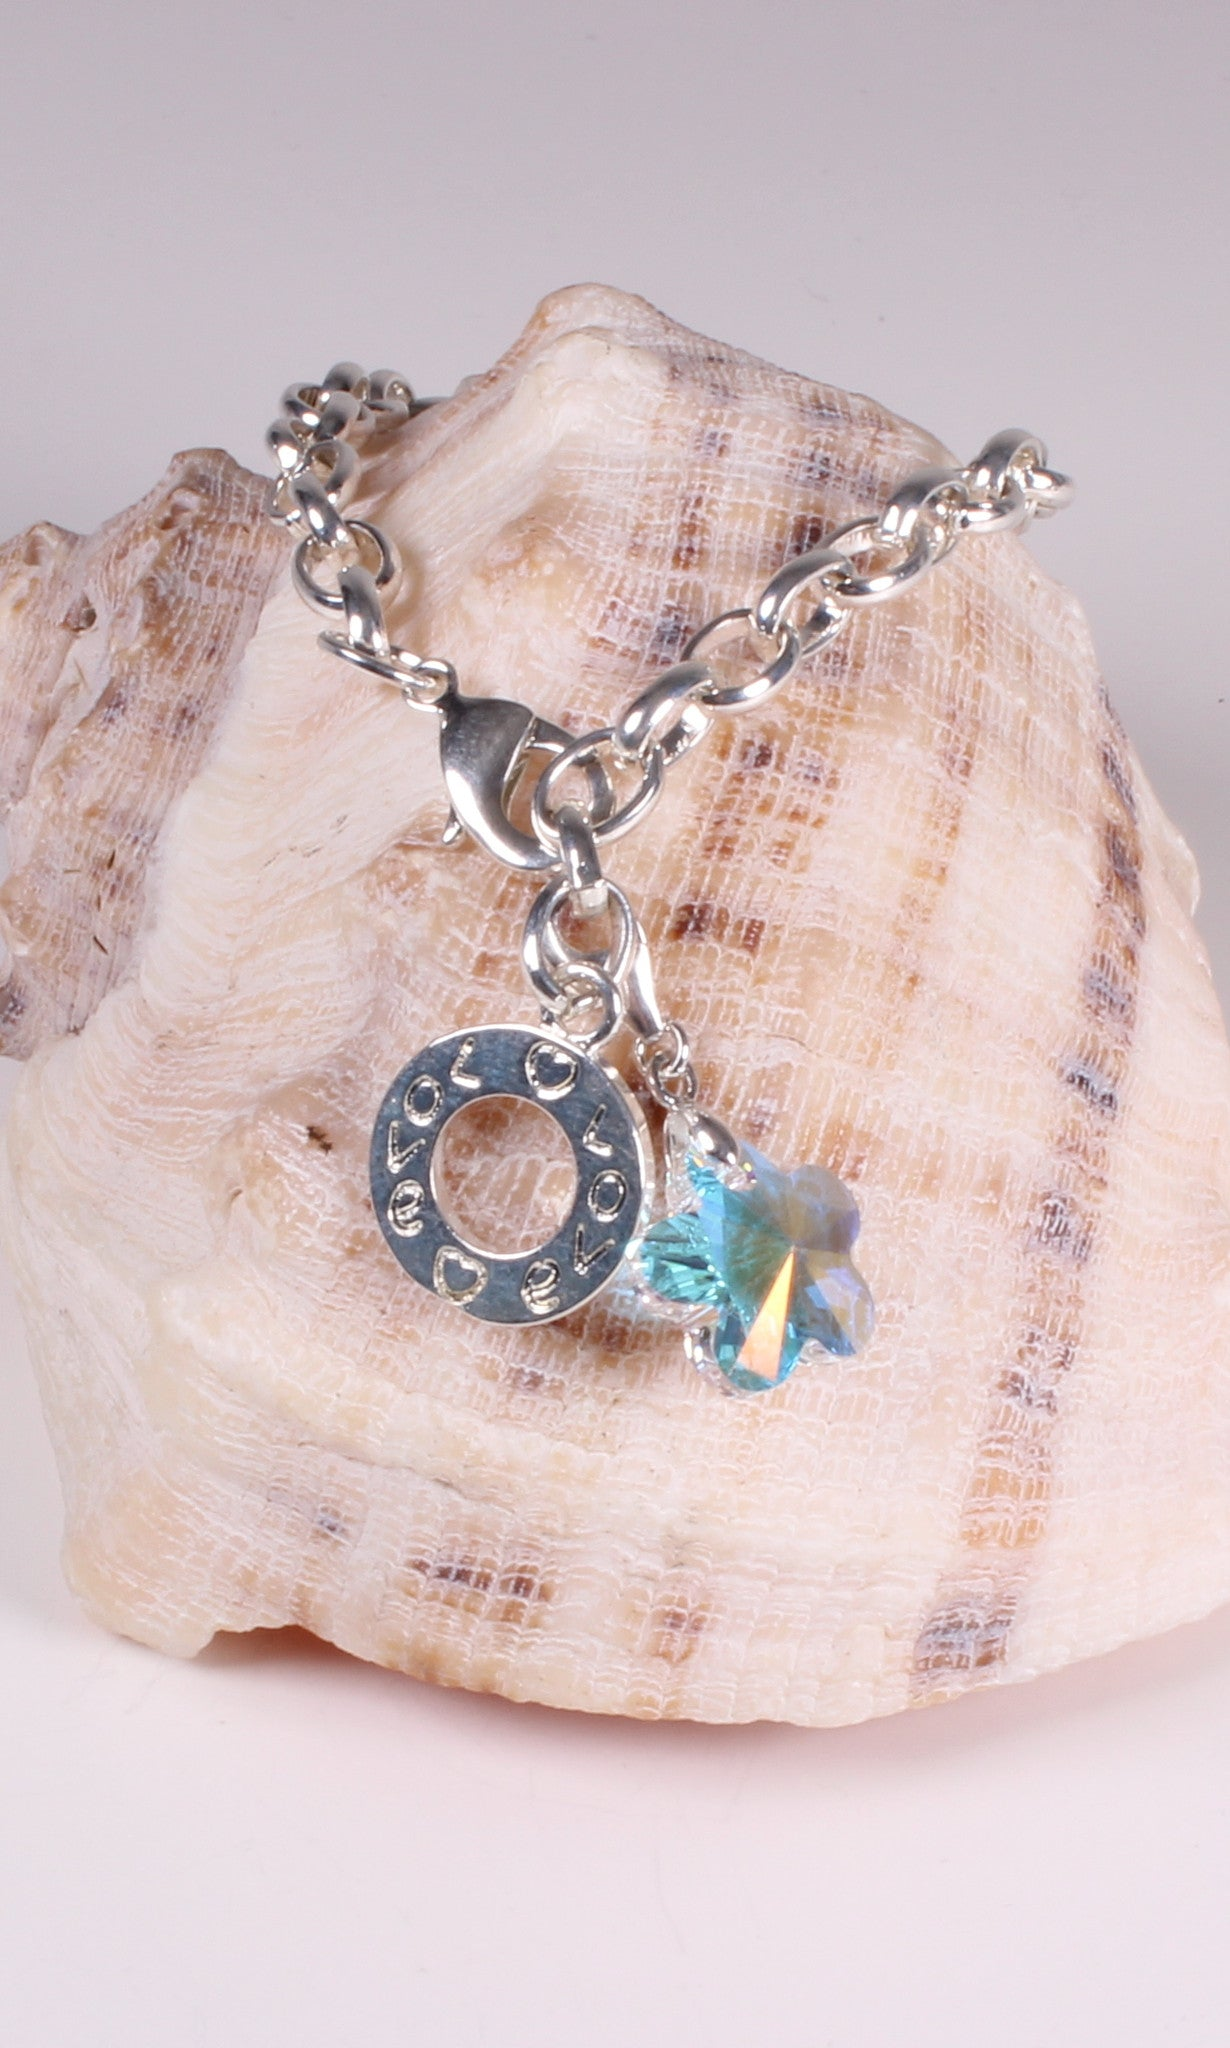 Silver Plated Charm Bracelet with Iridescent Austrian Crystal Flower Charm